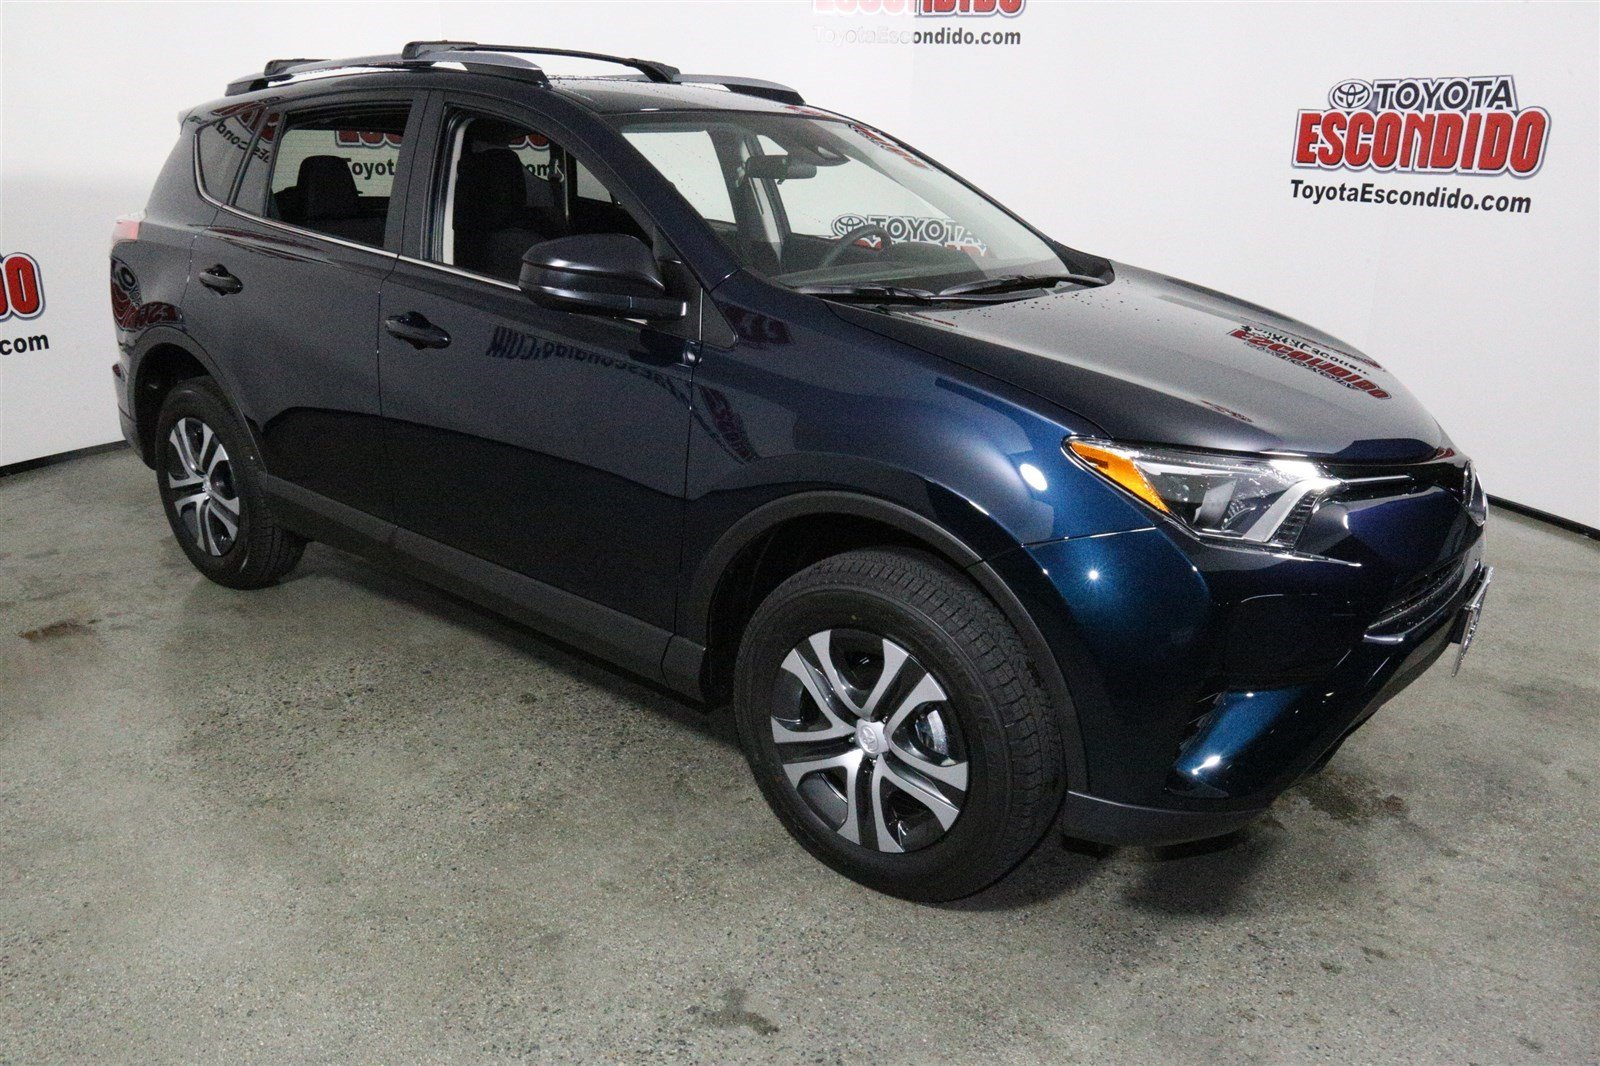 new 2017 toyota rav4 le sport utility in escondido hj114280 toyota of escondido. Black Bedroom Furniture Sets. Home Design Ideas